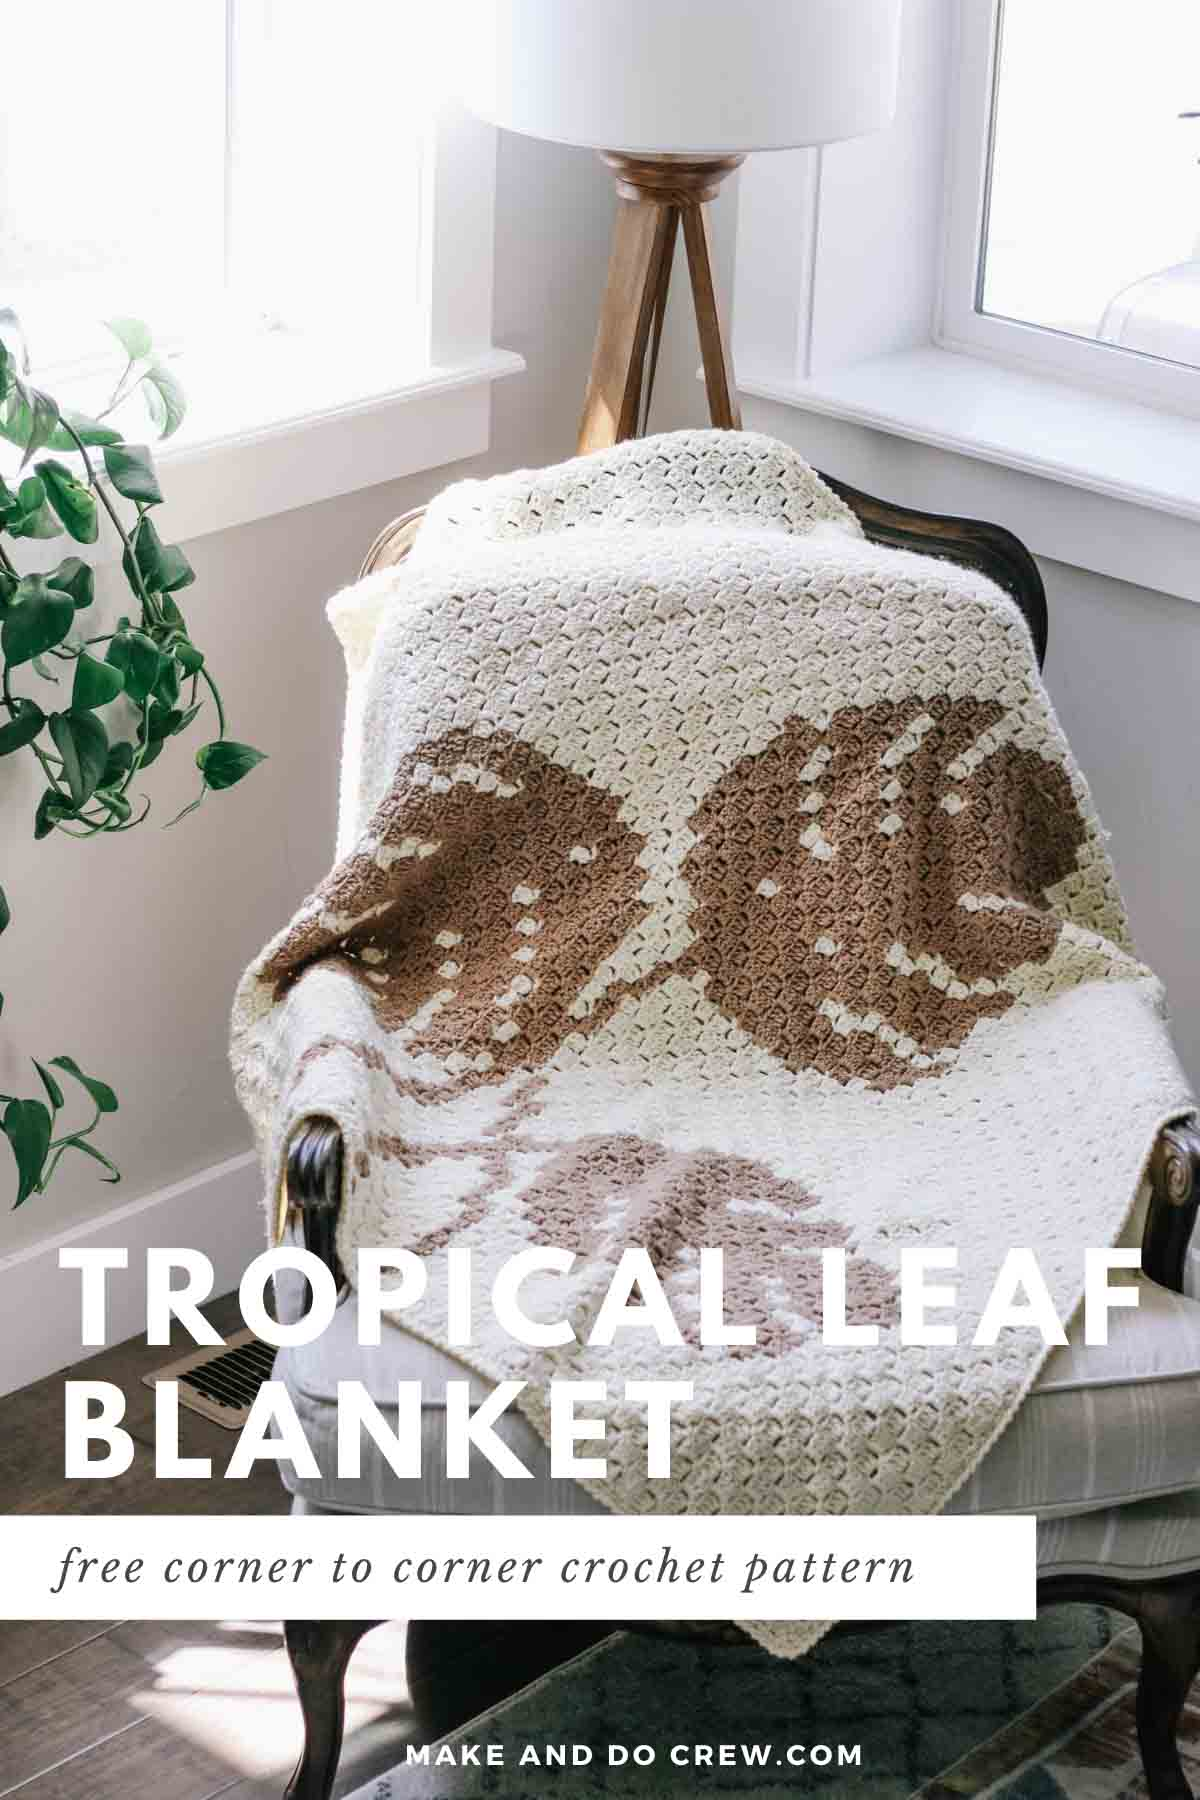 A monstera leaf corner to corner crochet blanket draped over a modern chair in a sunroom.